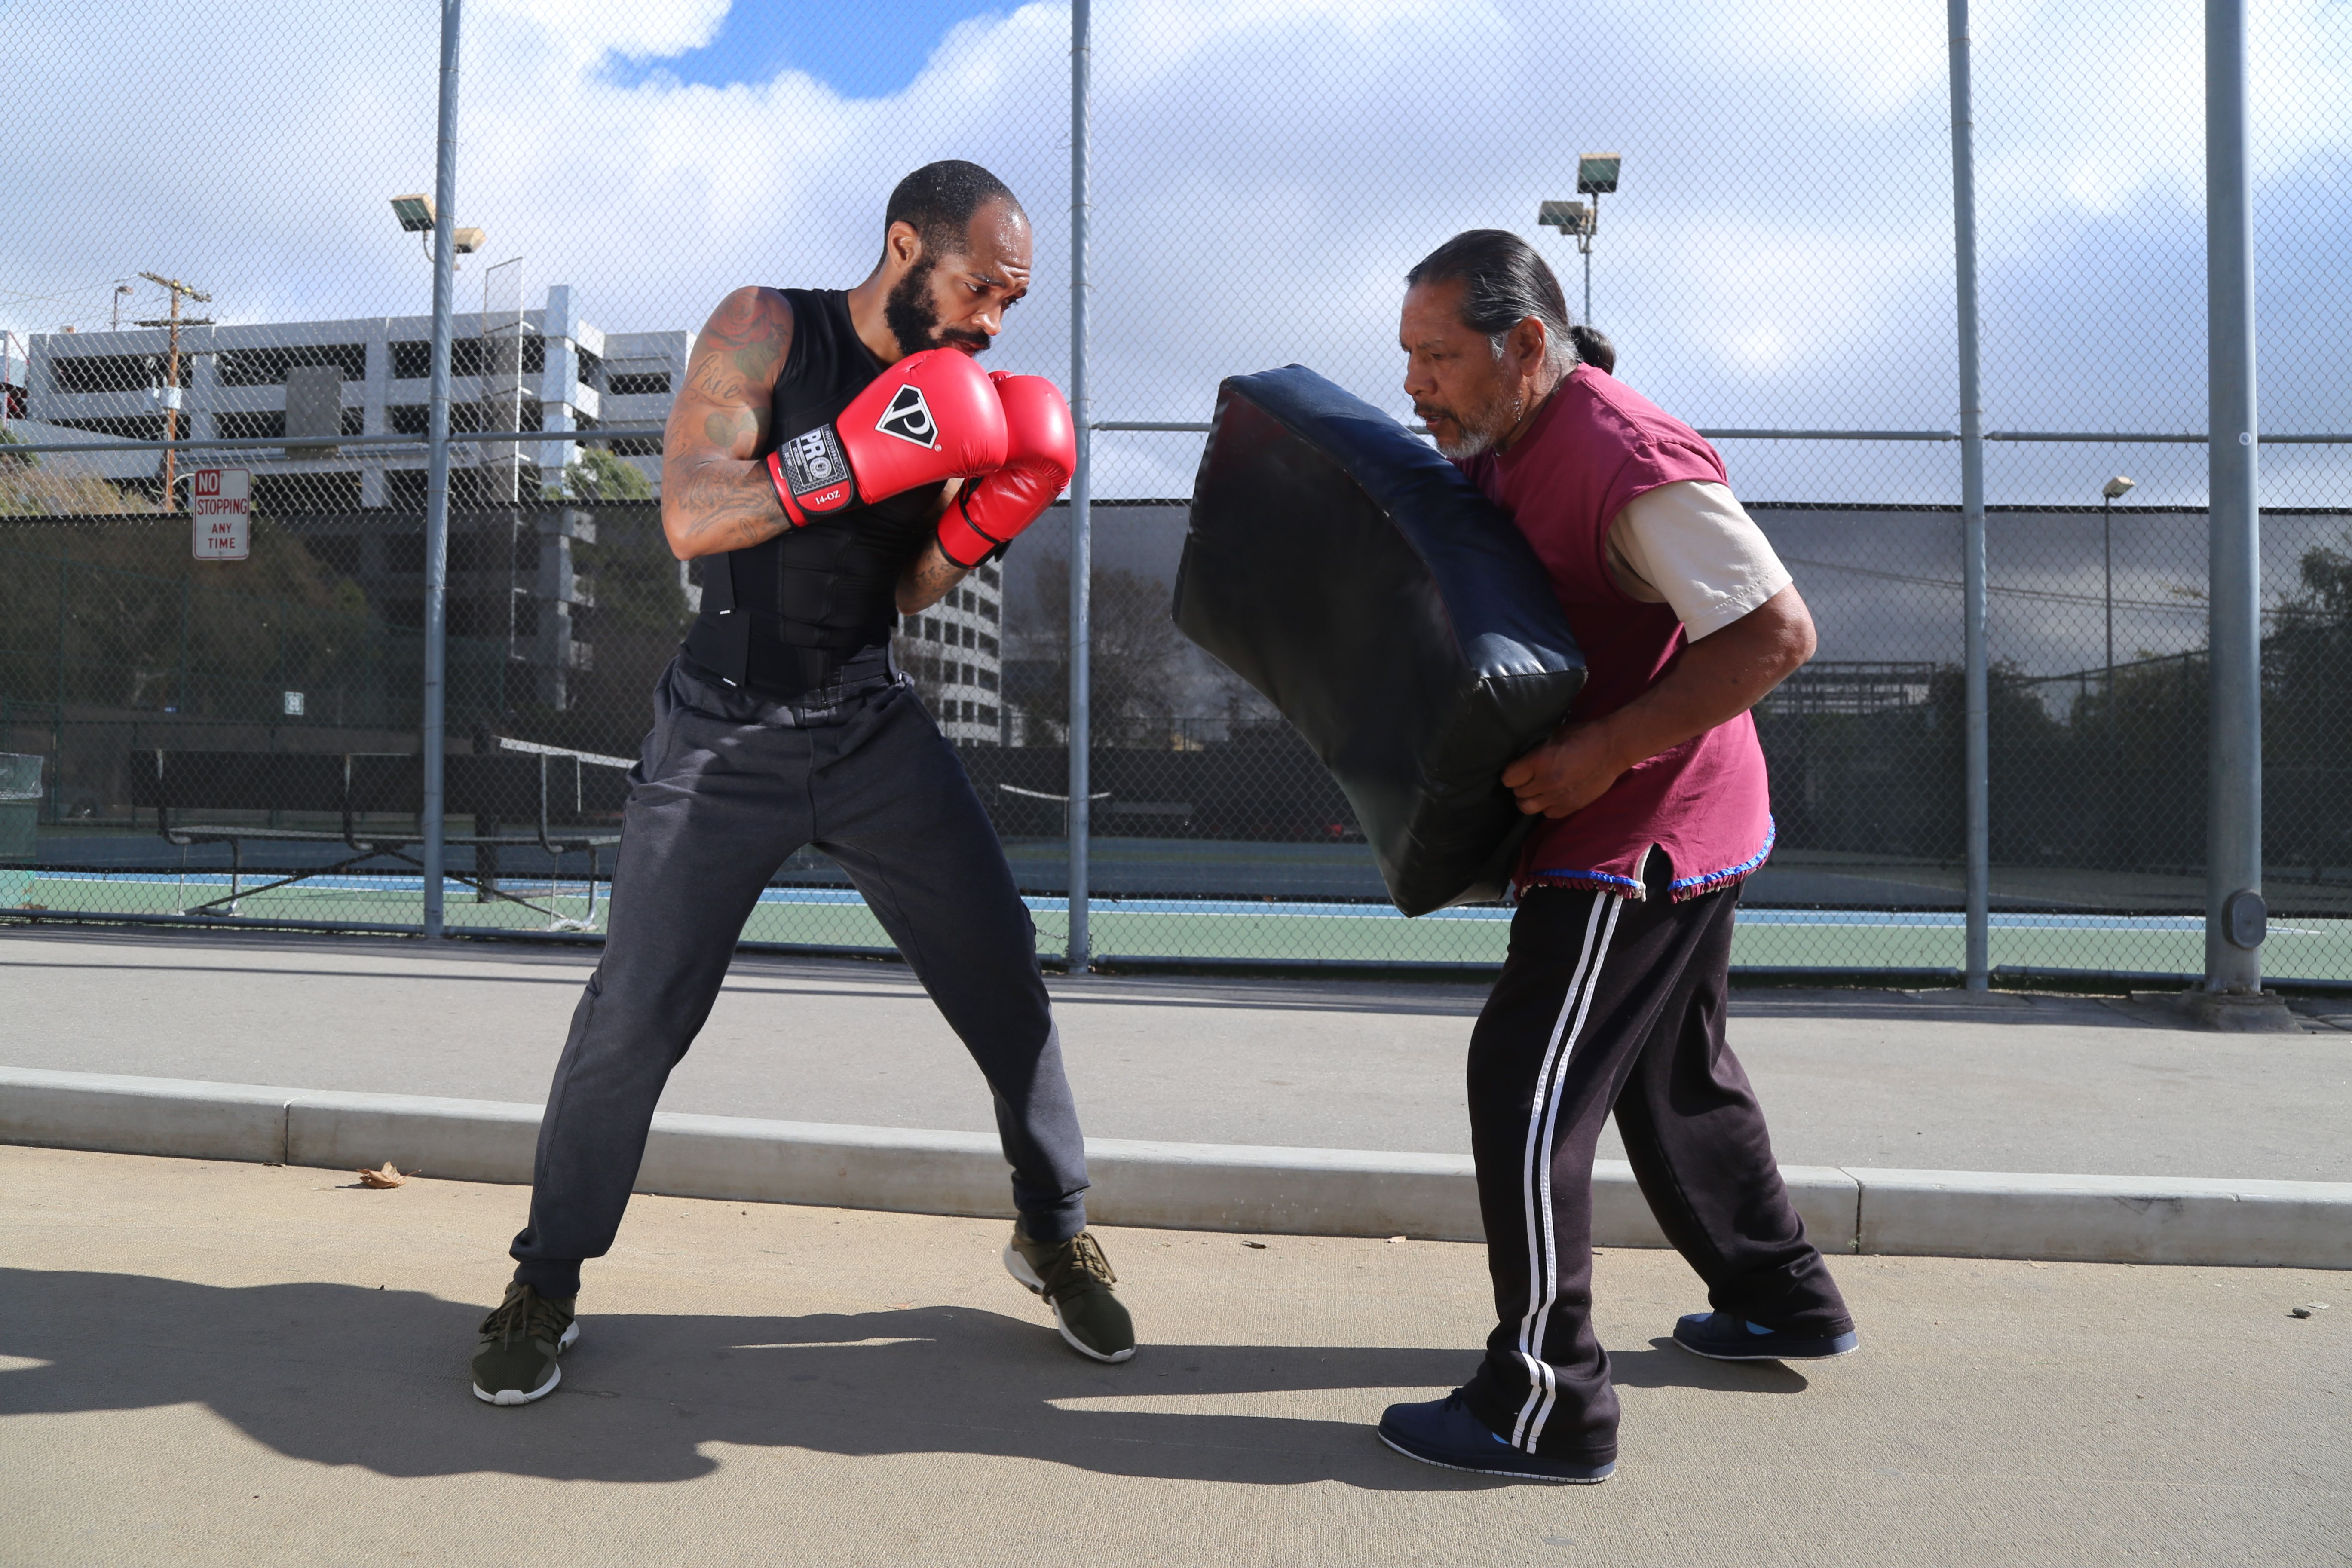 Hex 1 Men S Hexiflex Is Here To Support You Through Any Activity Hexiflex Activewear Boxing Athleisure Proper Posture Pants Athleisure